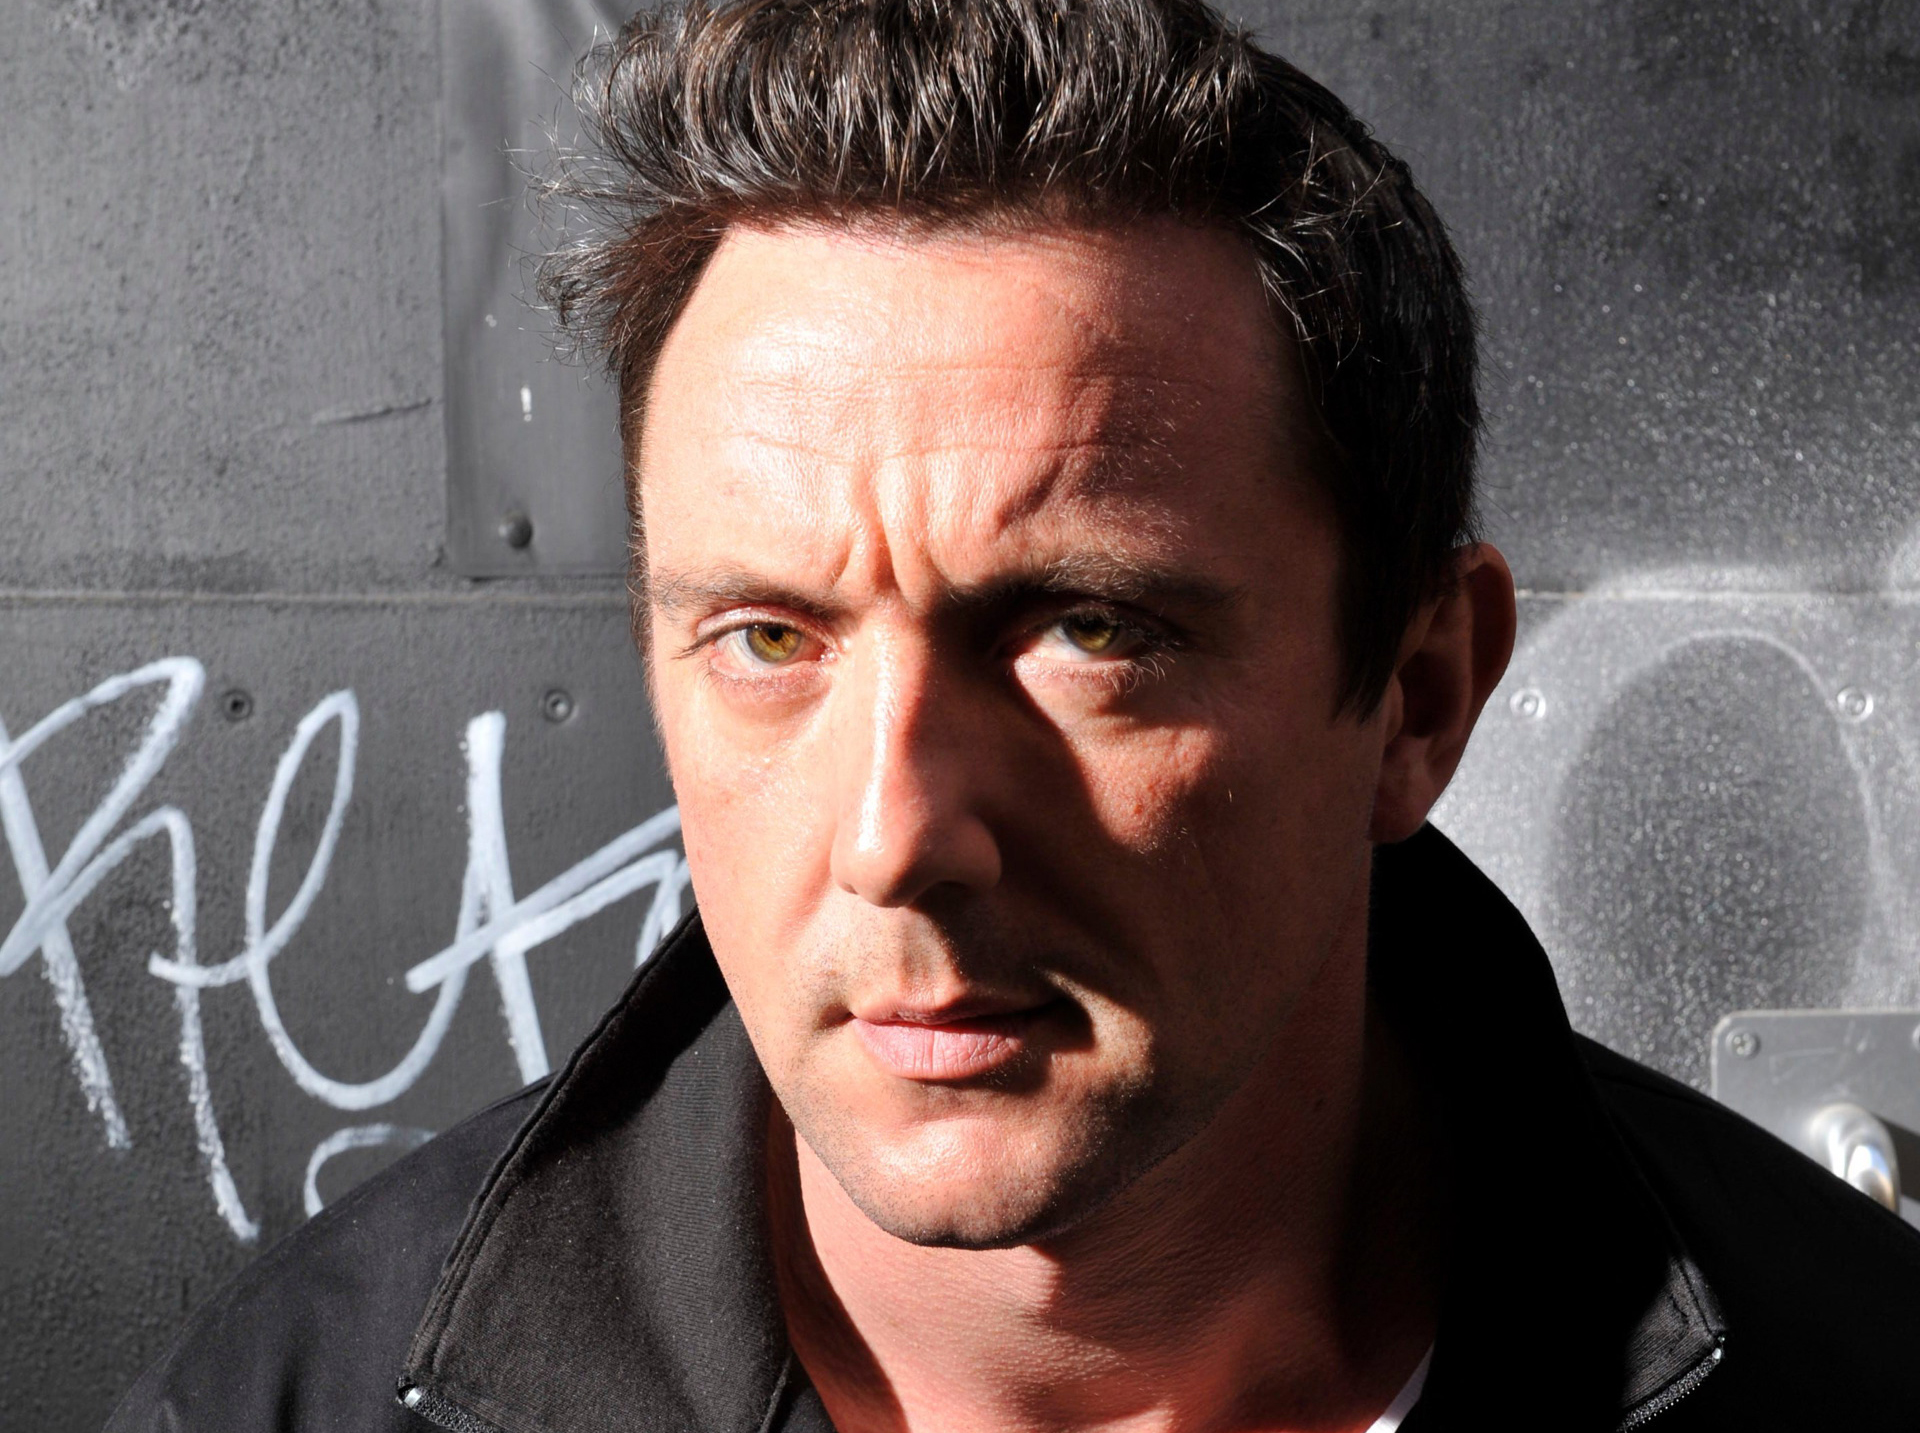 Watch Peter Serafinowicz (born 1972) video